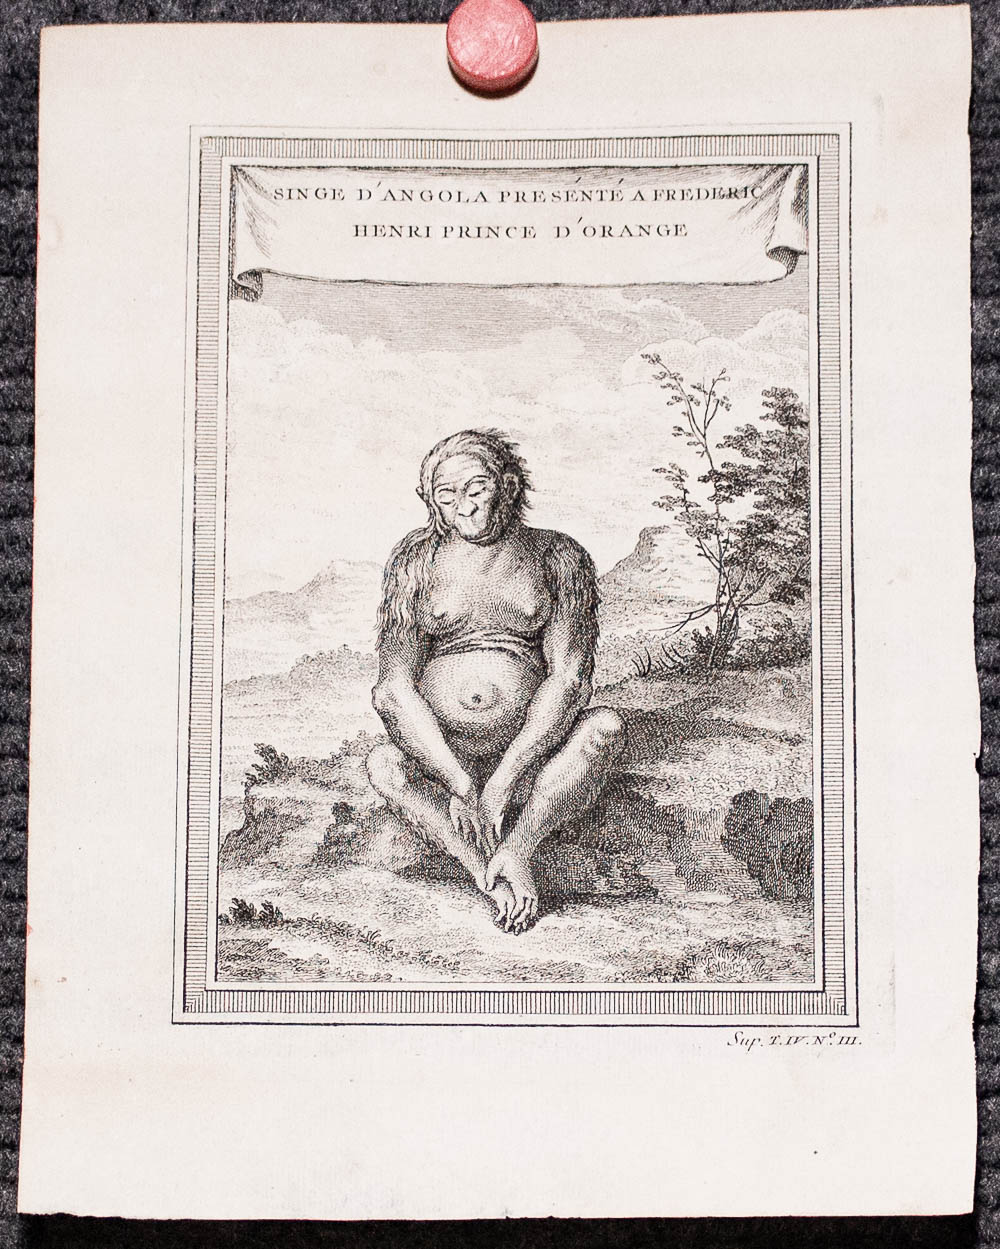 "Image for Two Bellin 1746 two Prints From Histoire Generale Des Voyages, To Include Chimpaneze [sic], And Henri Prince D'orange, 8"" X 6""."